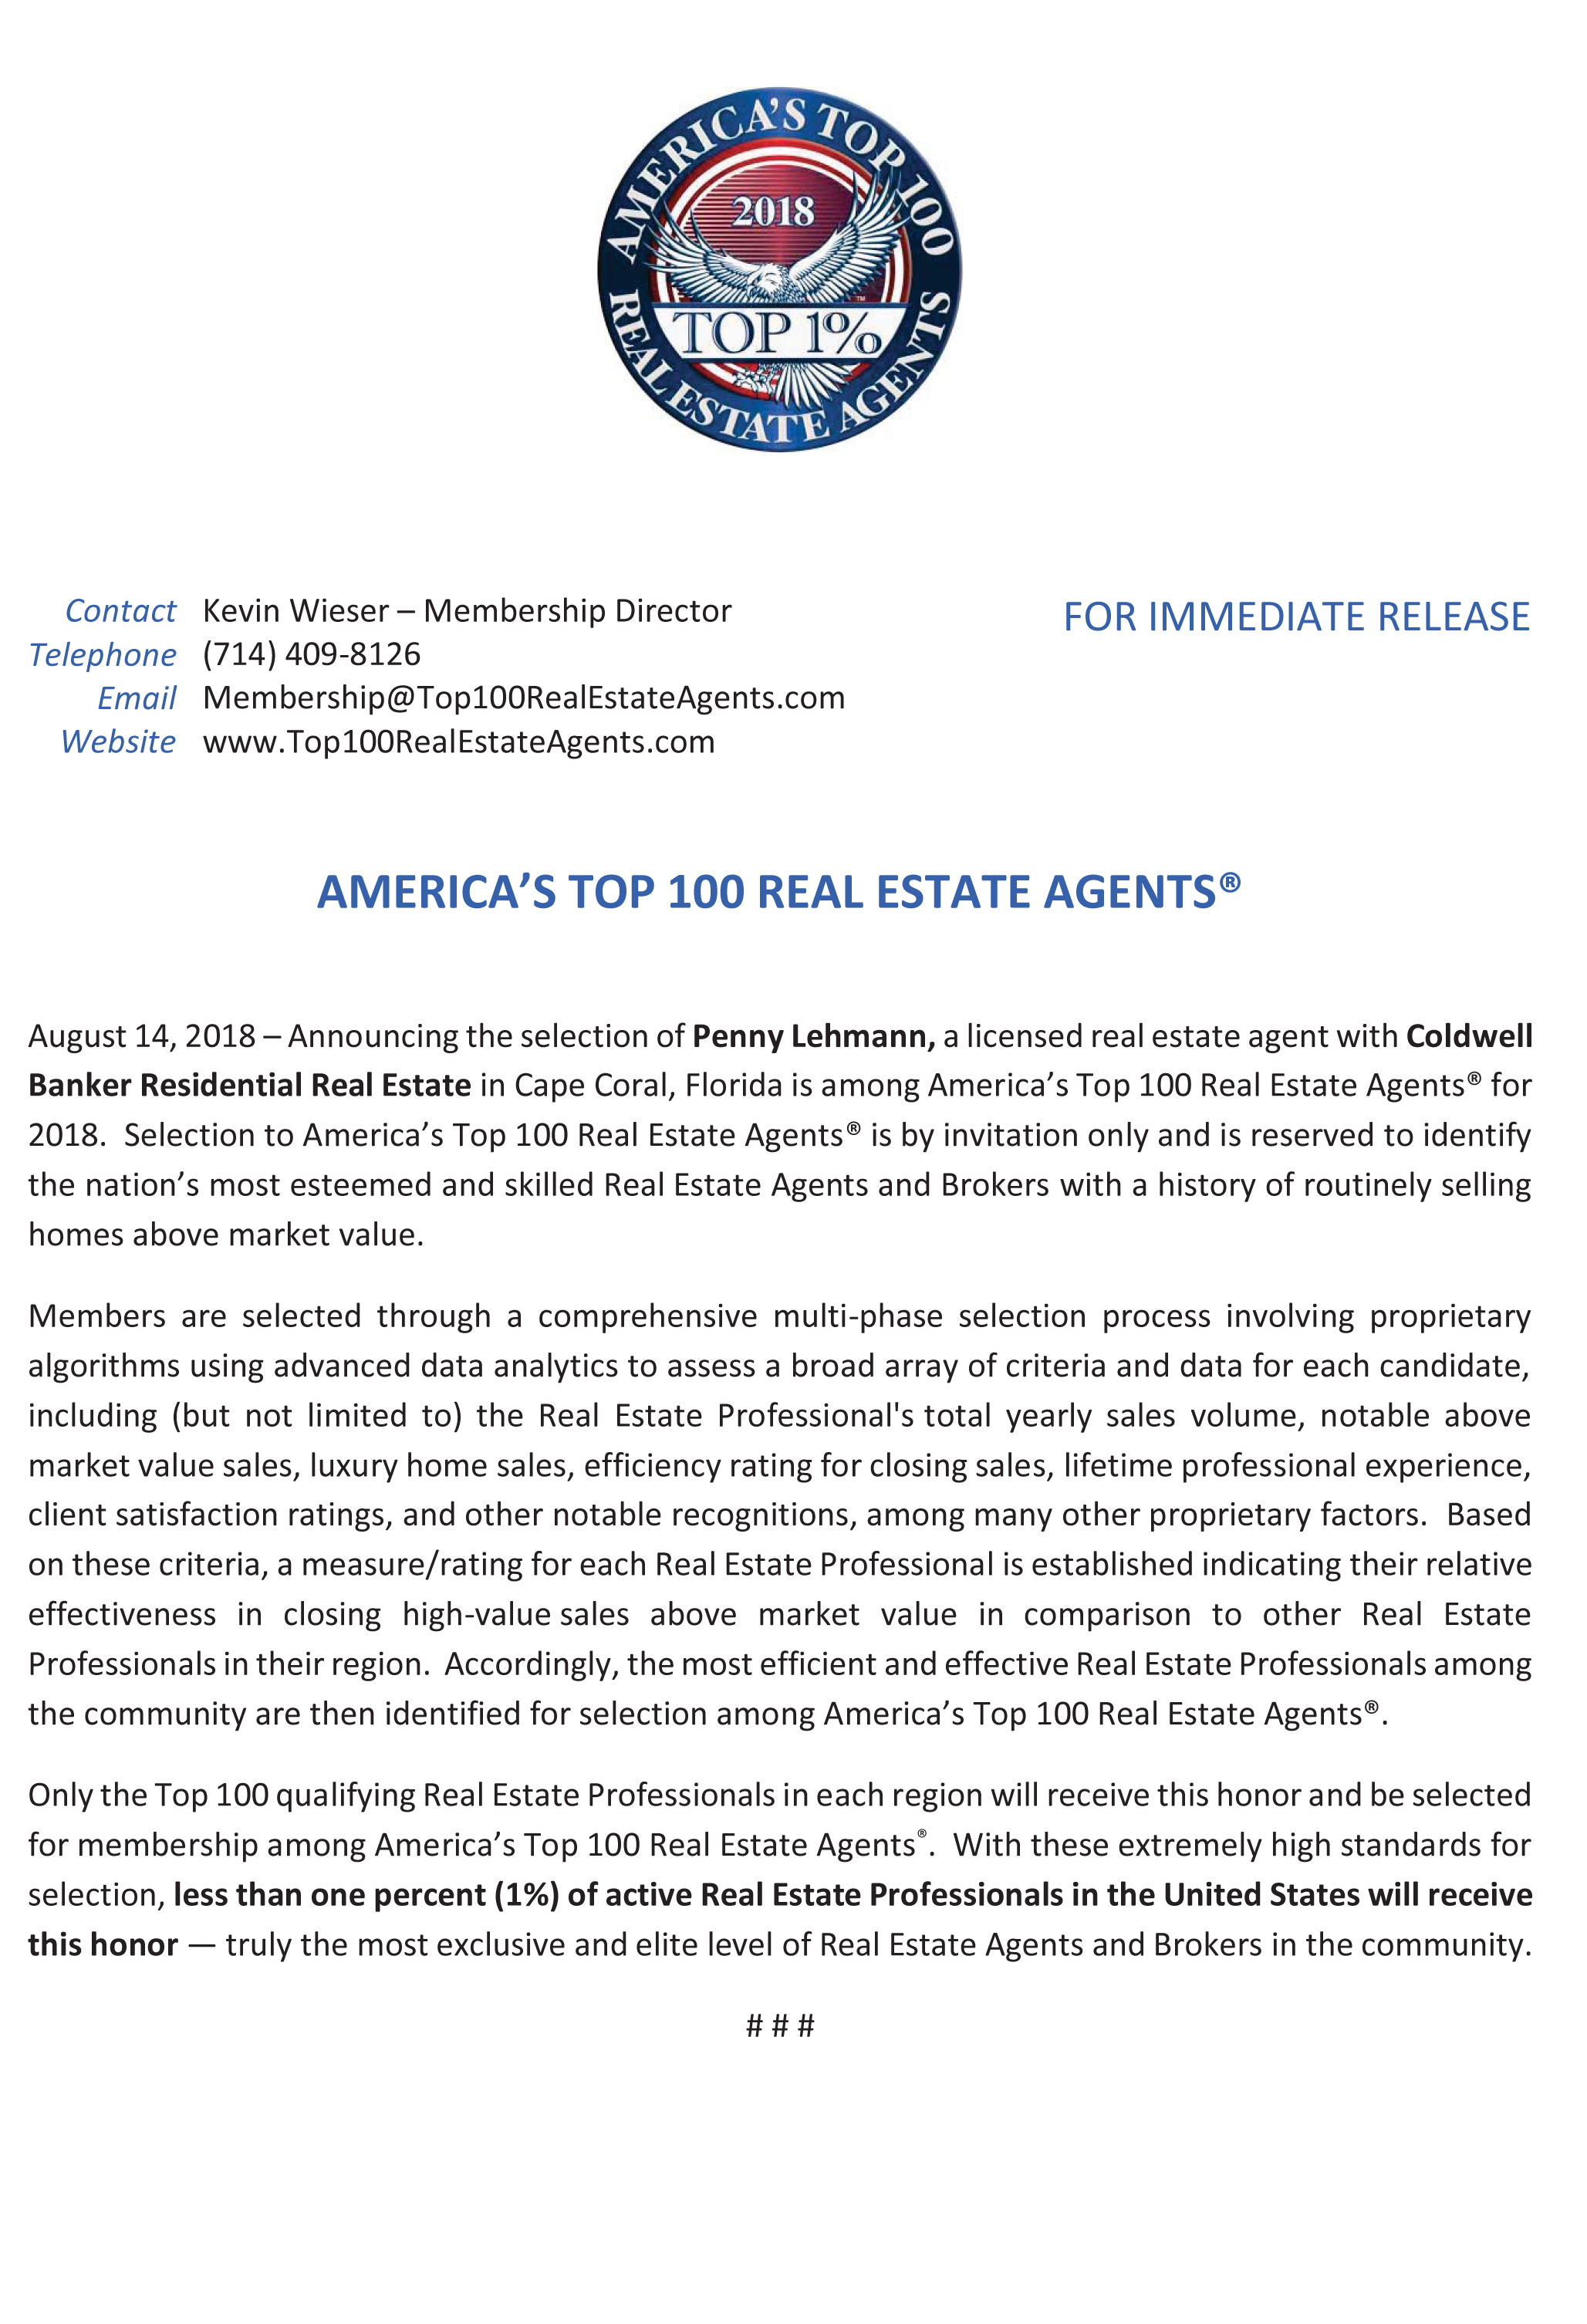 Americas Top 100 Real Estate Agents®